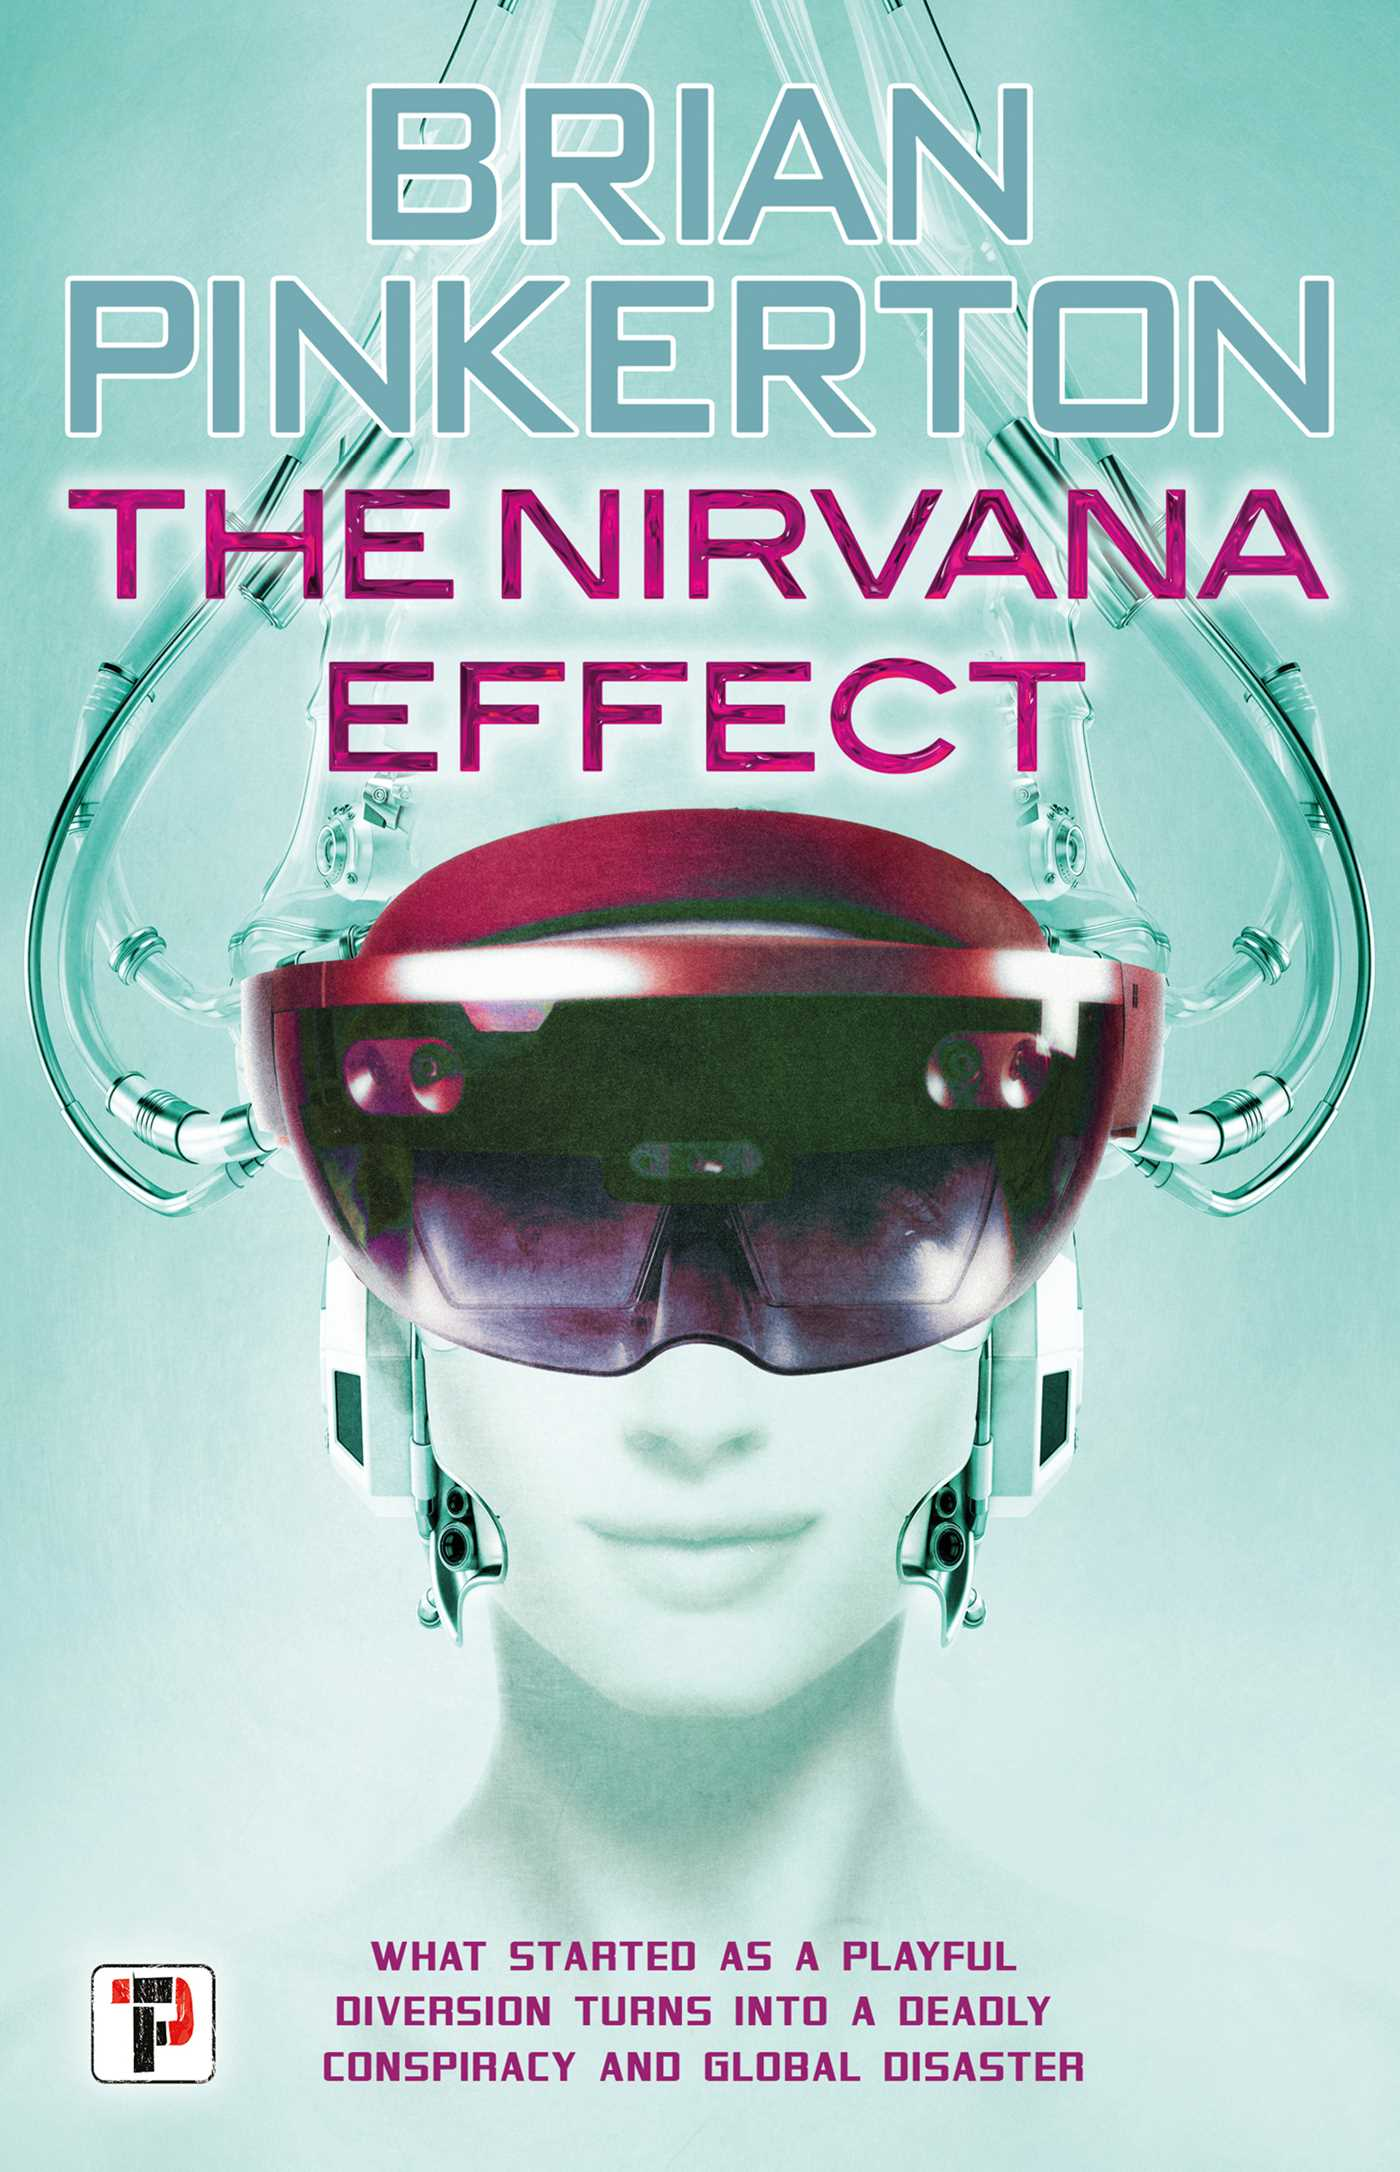 Book jacket with image of face wearing VR goggles.